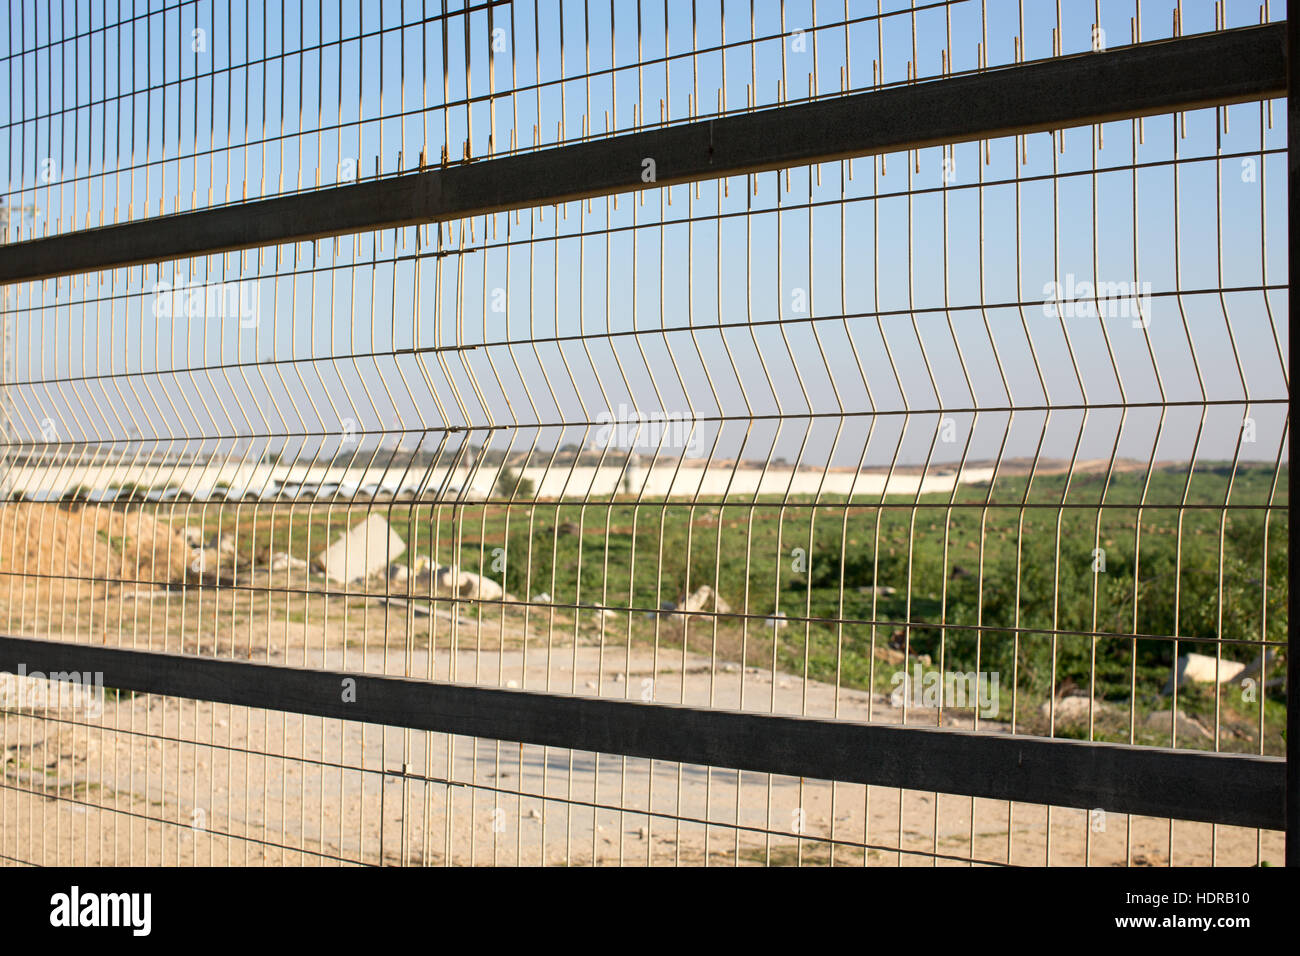 Walking through the covered tunnel at the Erez crossing from Gaza to Israel. - Stock Image